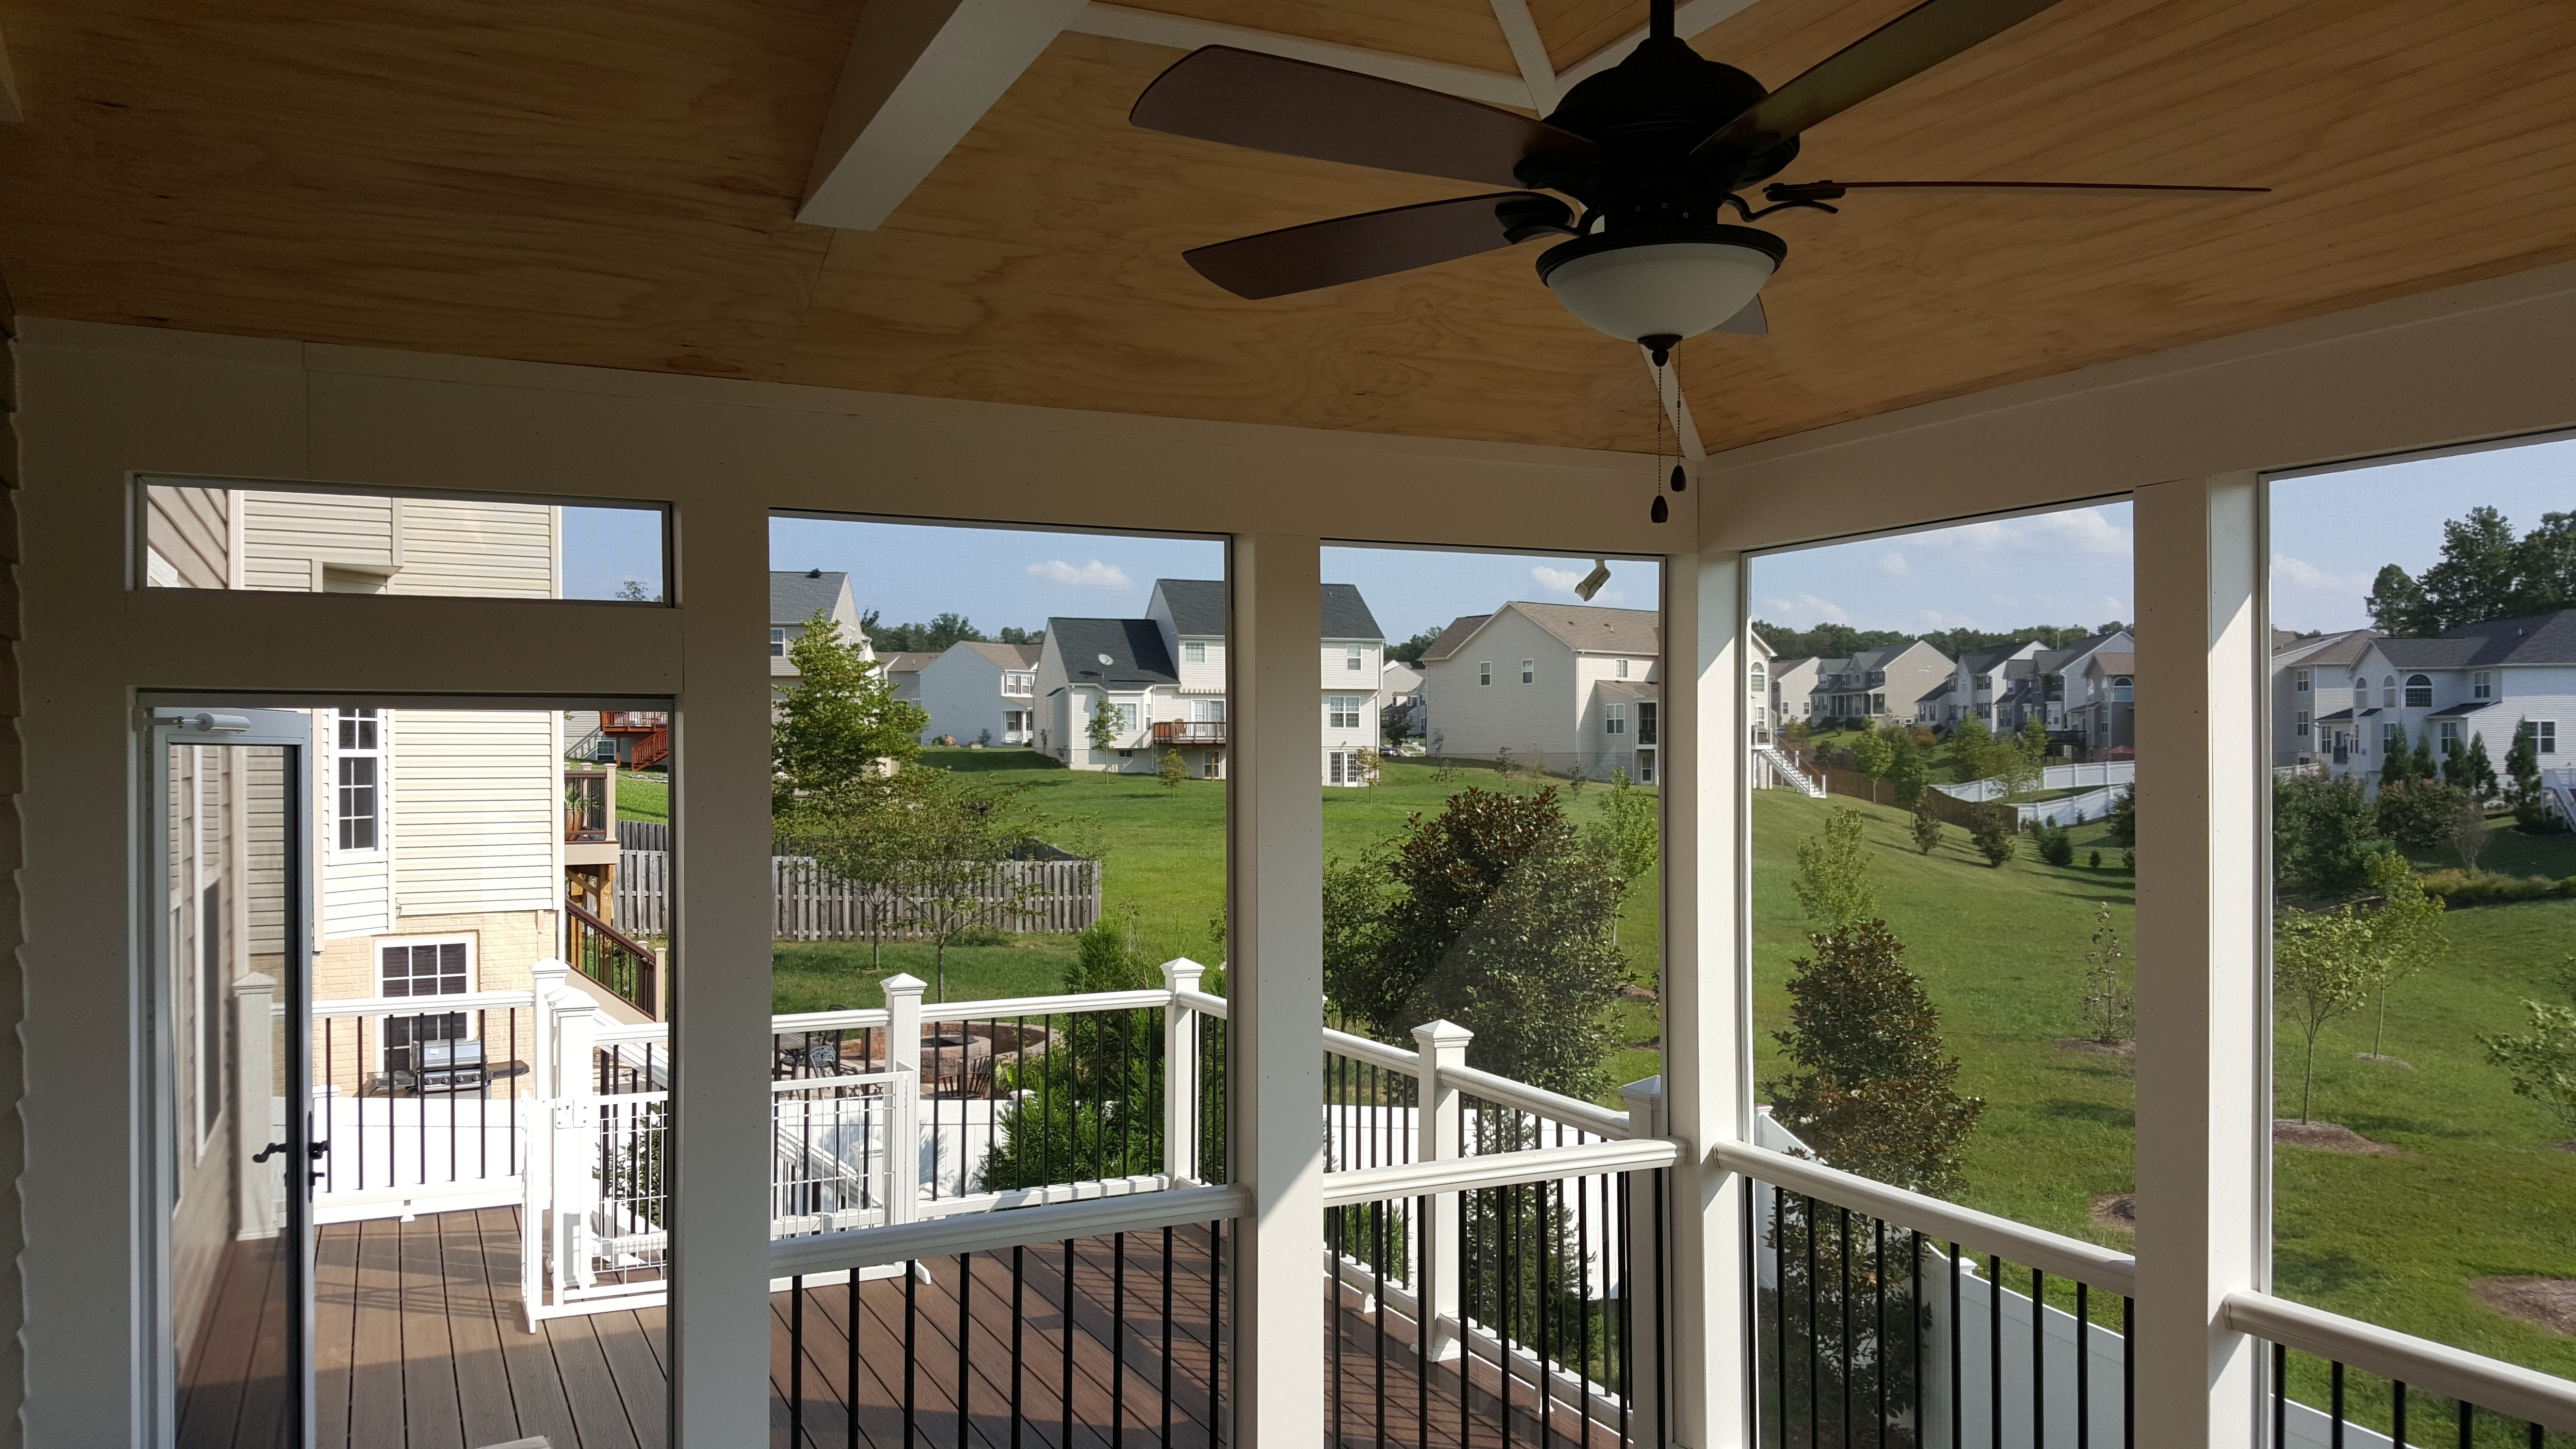 Outdoor Ceiling Fan Under Deck Pertaining To Popular Under Deck Ceiling – Carolina Home Exteriors (View 10 of 20)